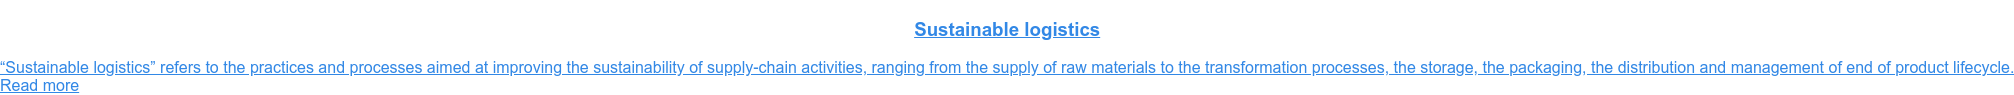 "Sustainable logistics  ""Sustainable logistics"" refers to the practices and processes aimed at  improving the sustainability of supply-chain activities, ranging from the  supply of raw materials to the transformation processes, the storage, the  packaging, the distribution and management of end of product lifecycle. Read more"